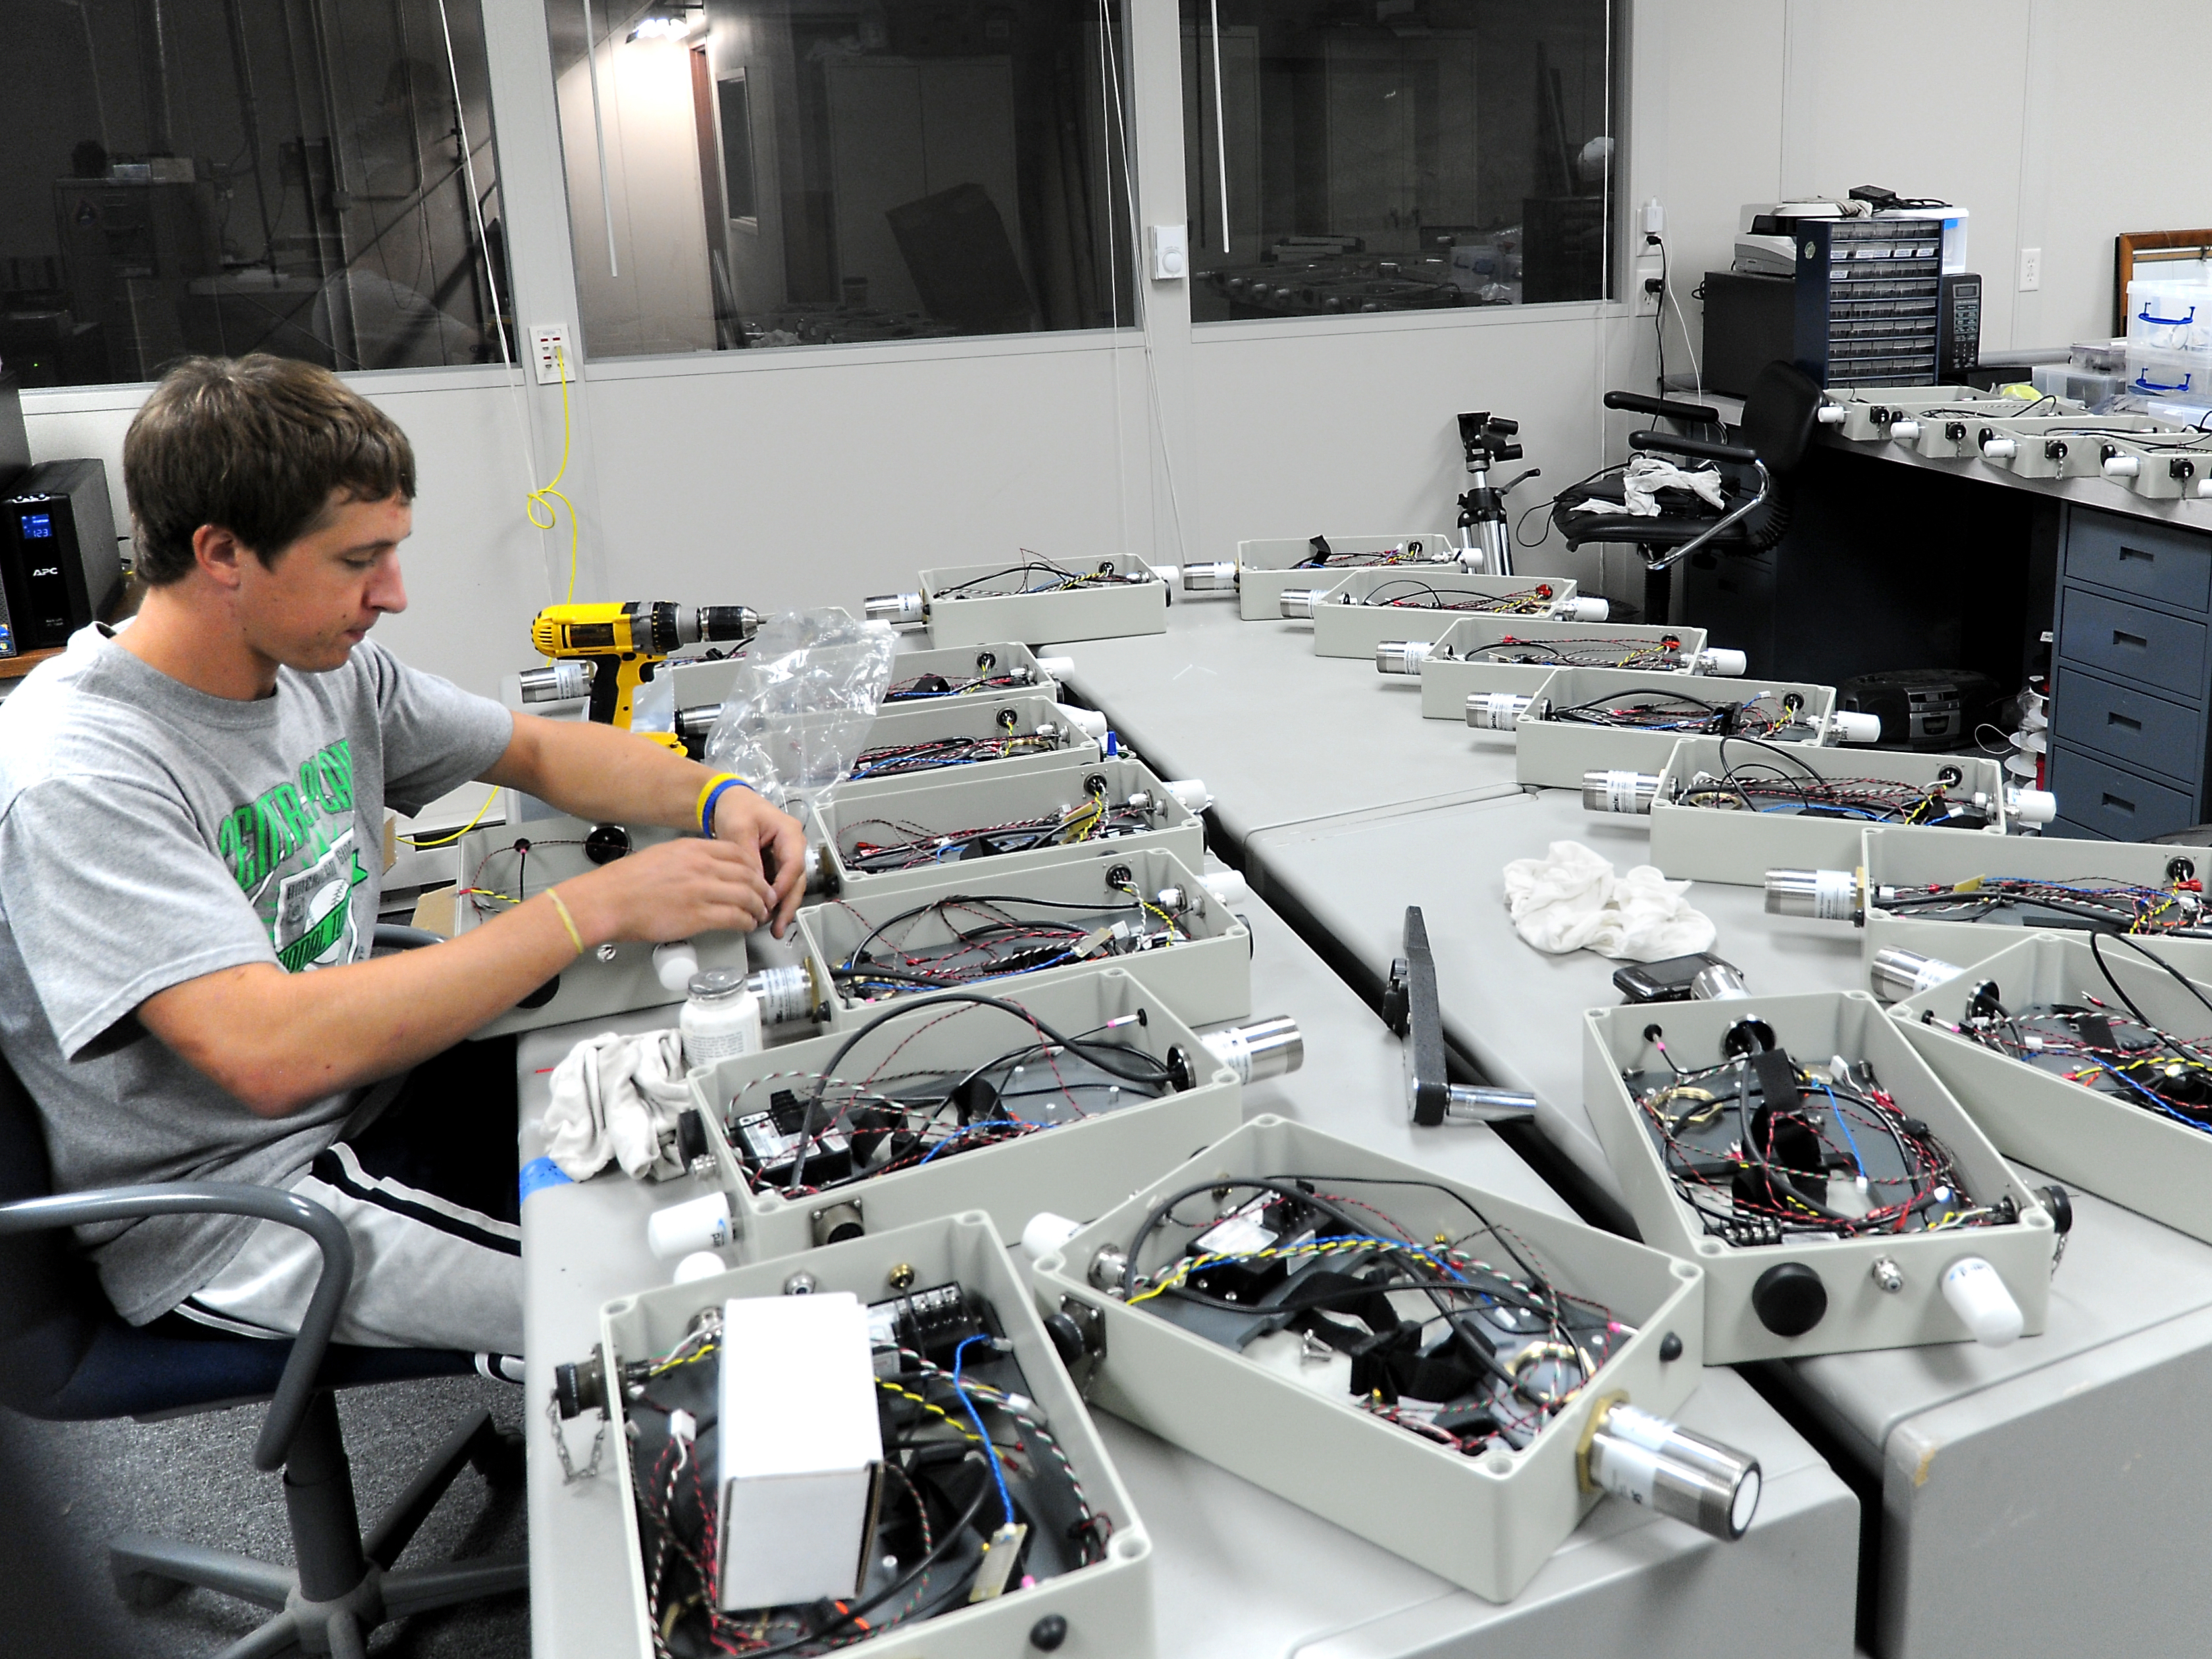 A researcher works on a stream stage sensor.